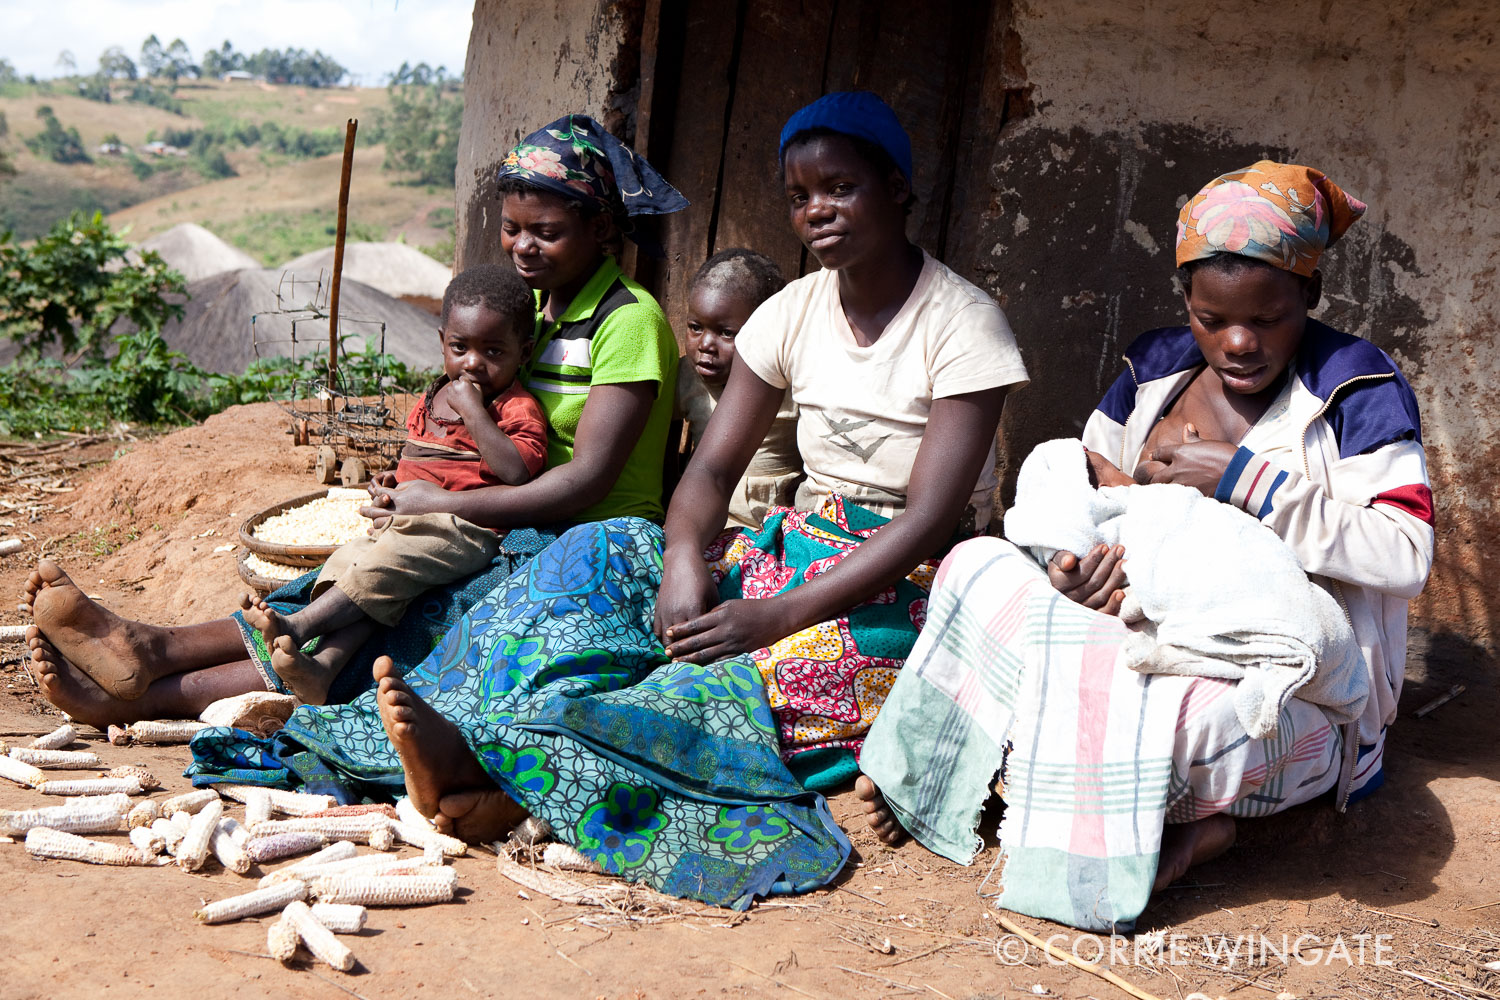 Newborn babies and mothers effected by the grant, Kweneza village, near Nsambe Health Centre, Neno district., Malawi, Africa